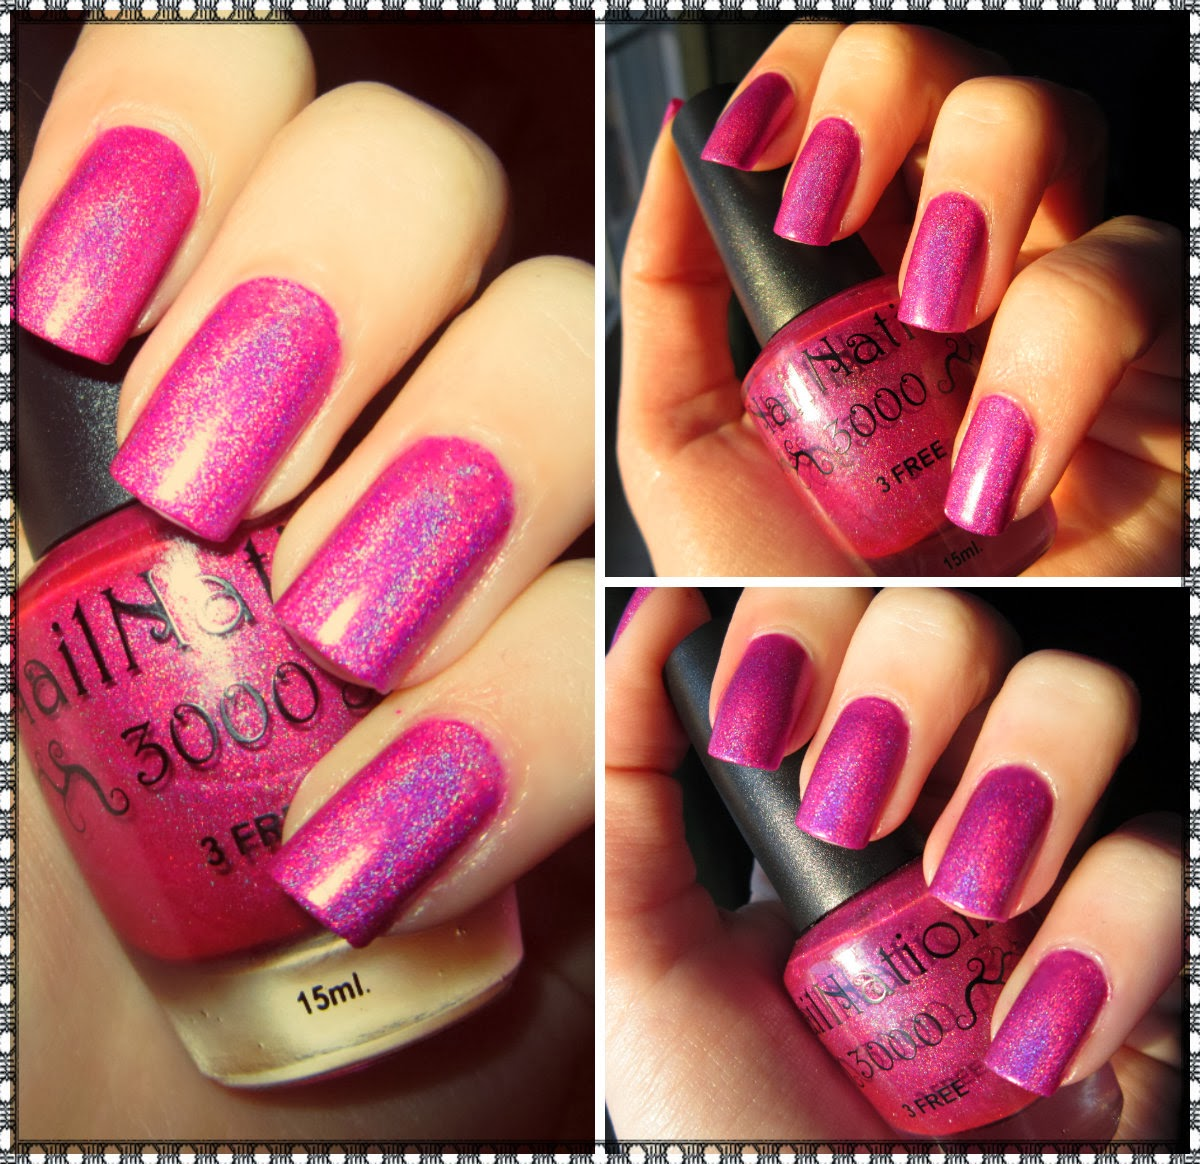 NailNation 3000 AmazeBalls